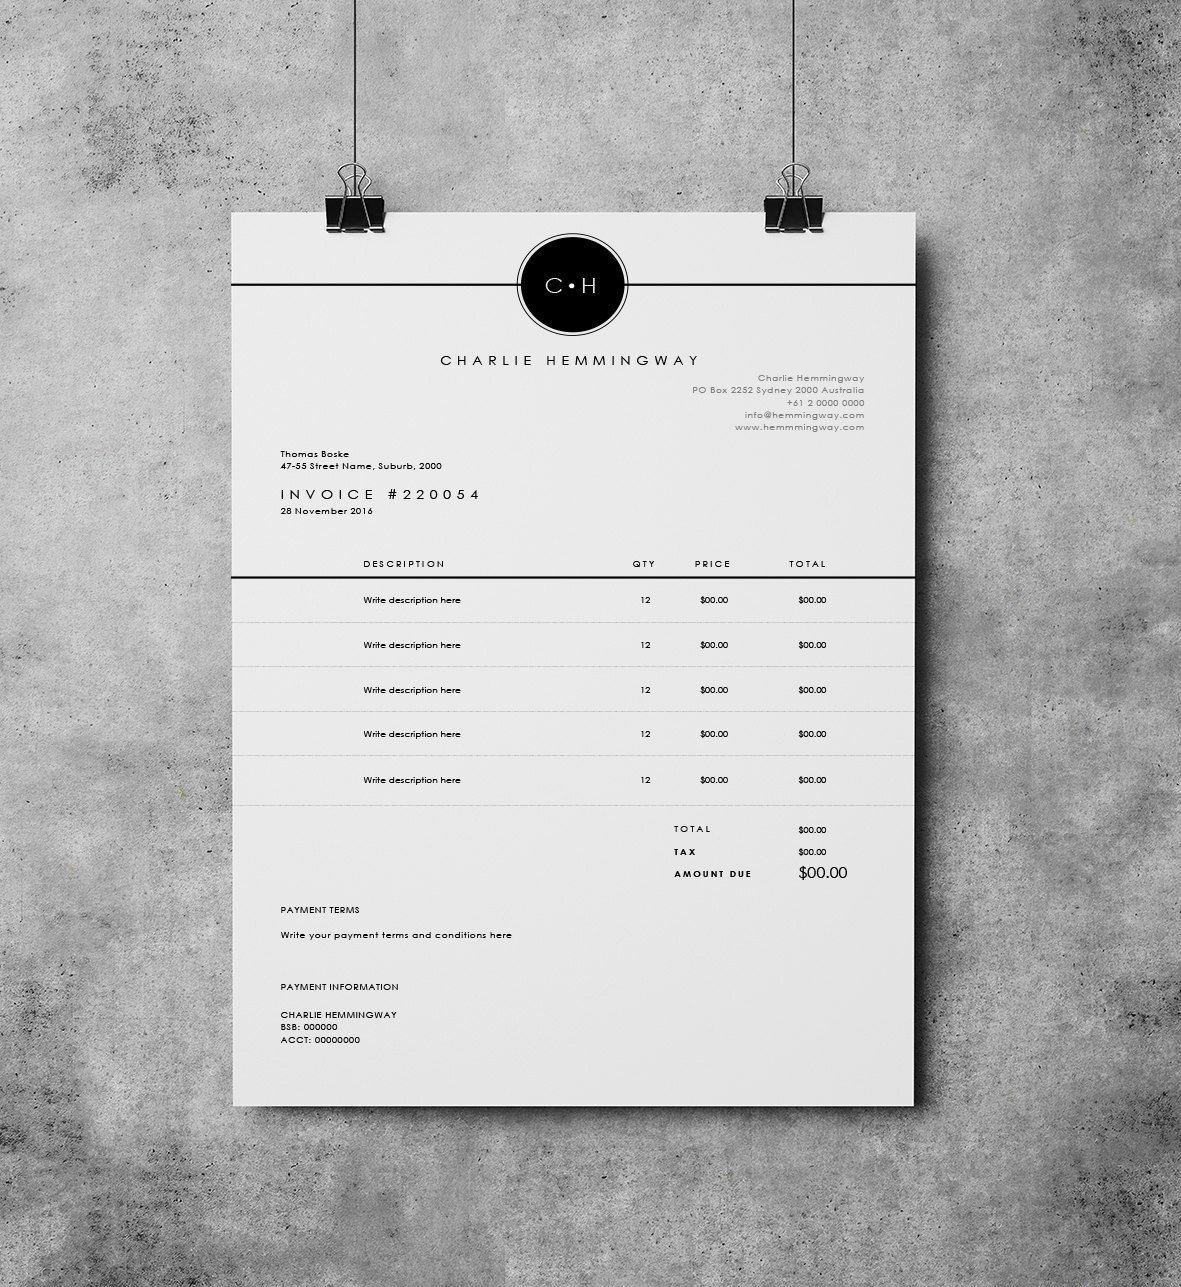 Invoice Template Invoice Design Receipt MS Word Invoice - Word document invoice template online clothing stores